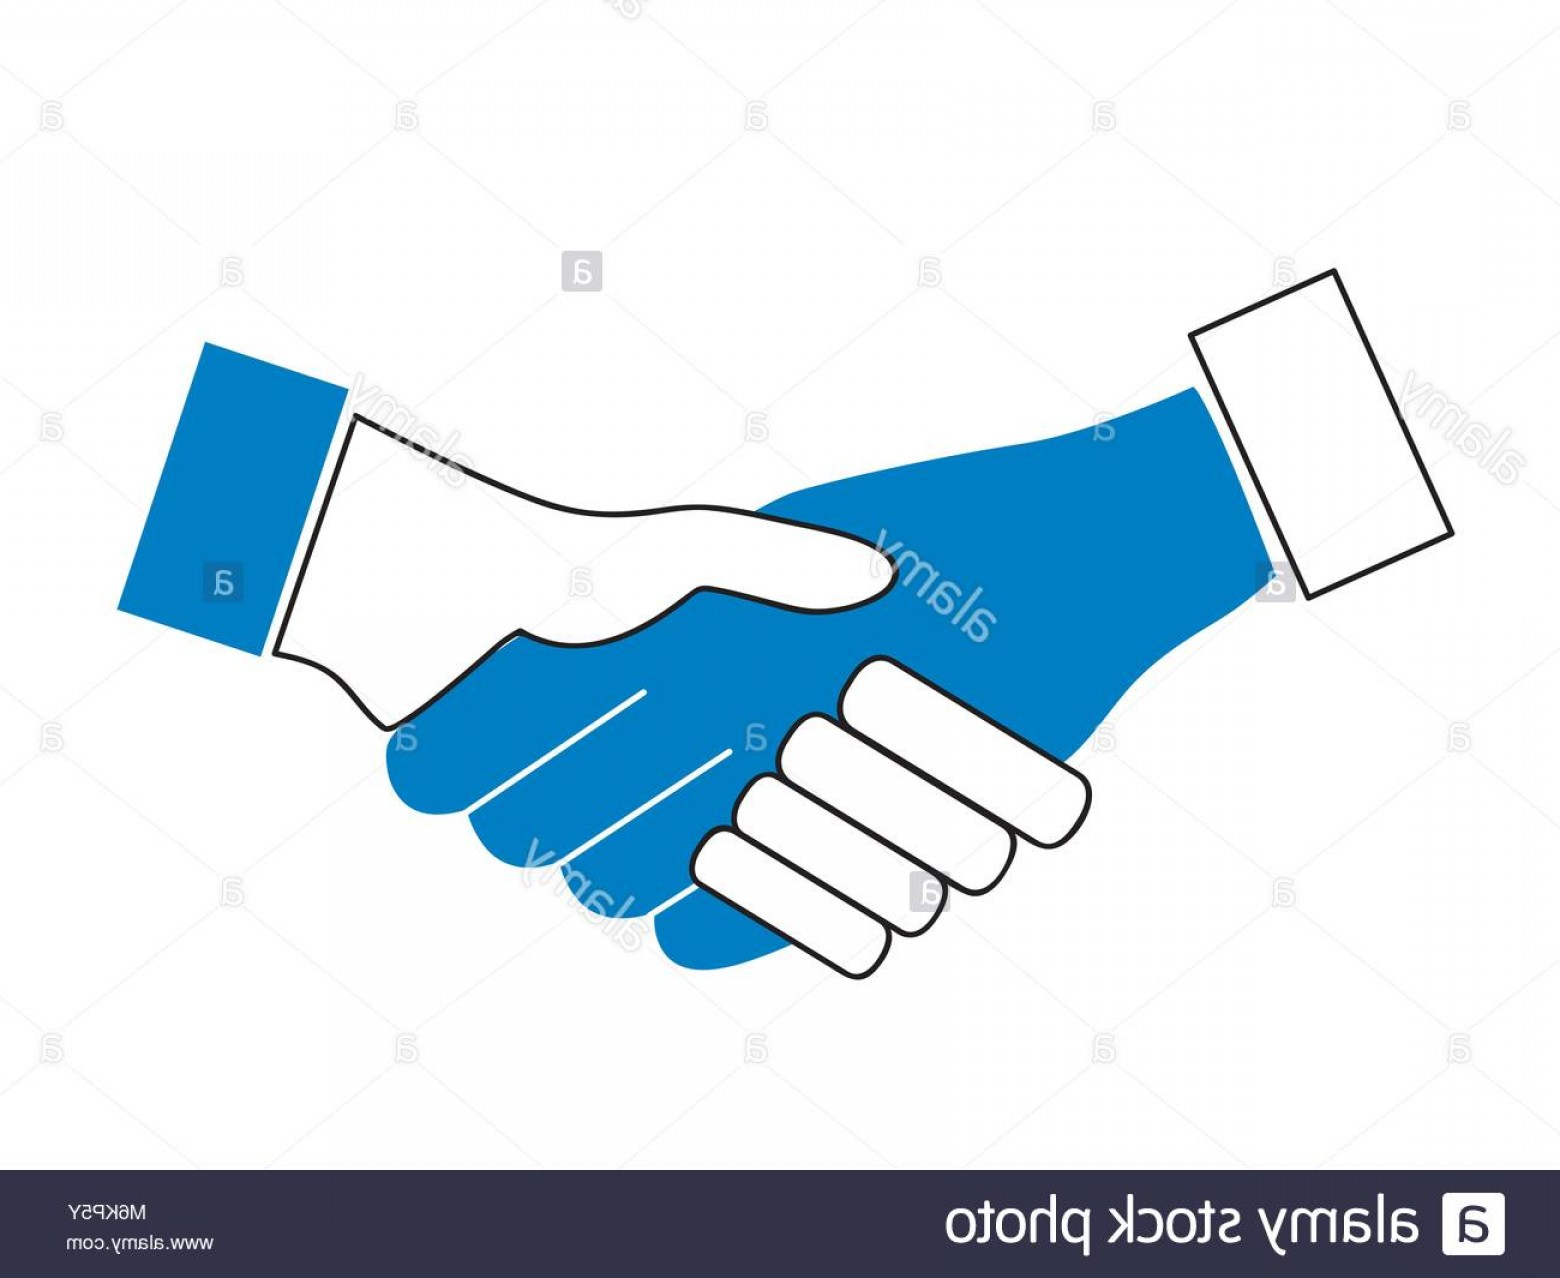 Handshake Vector Art: Stock Photo Handshake Vector Icon Business Concept